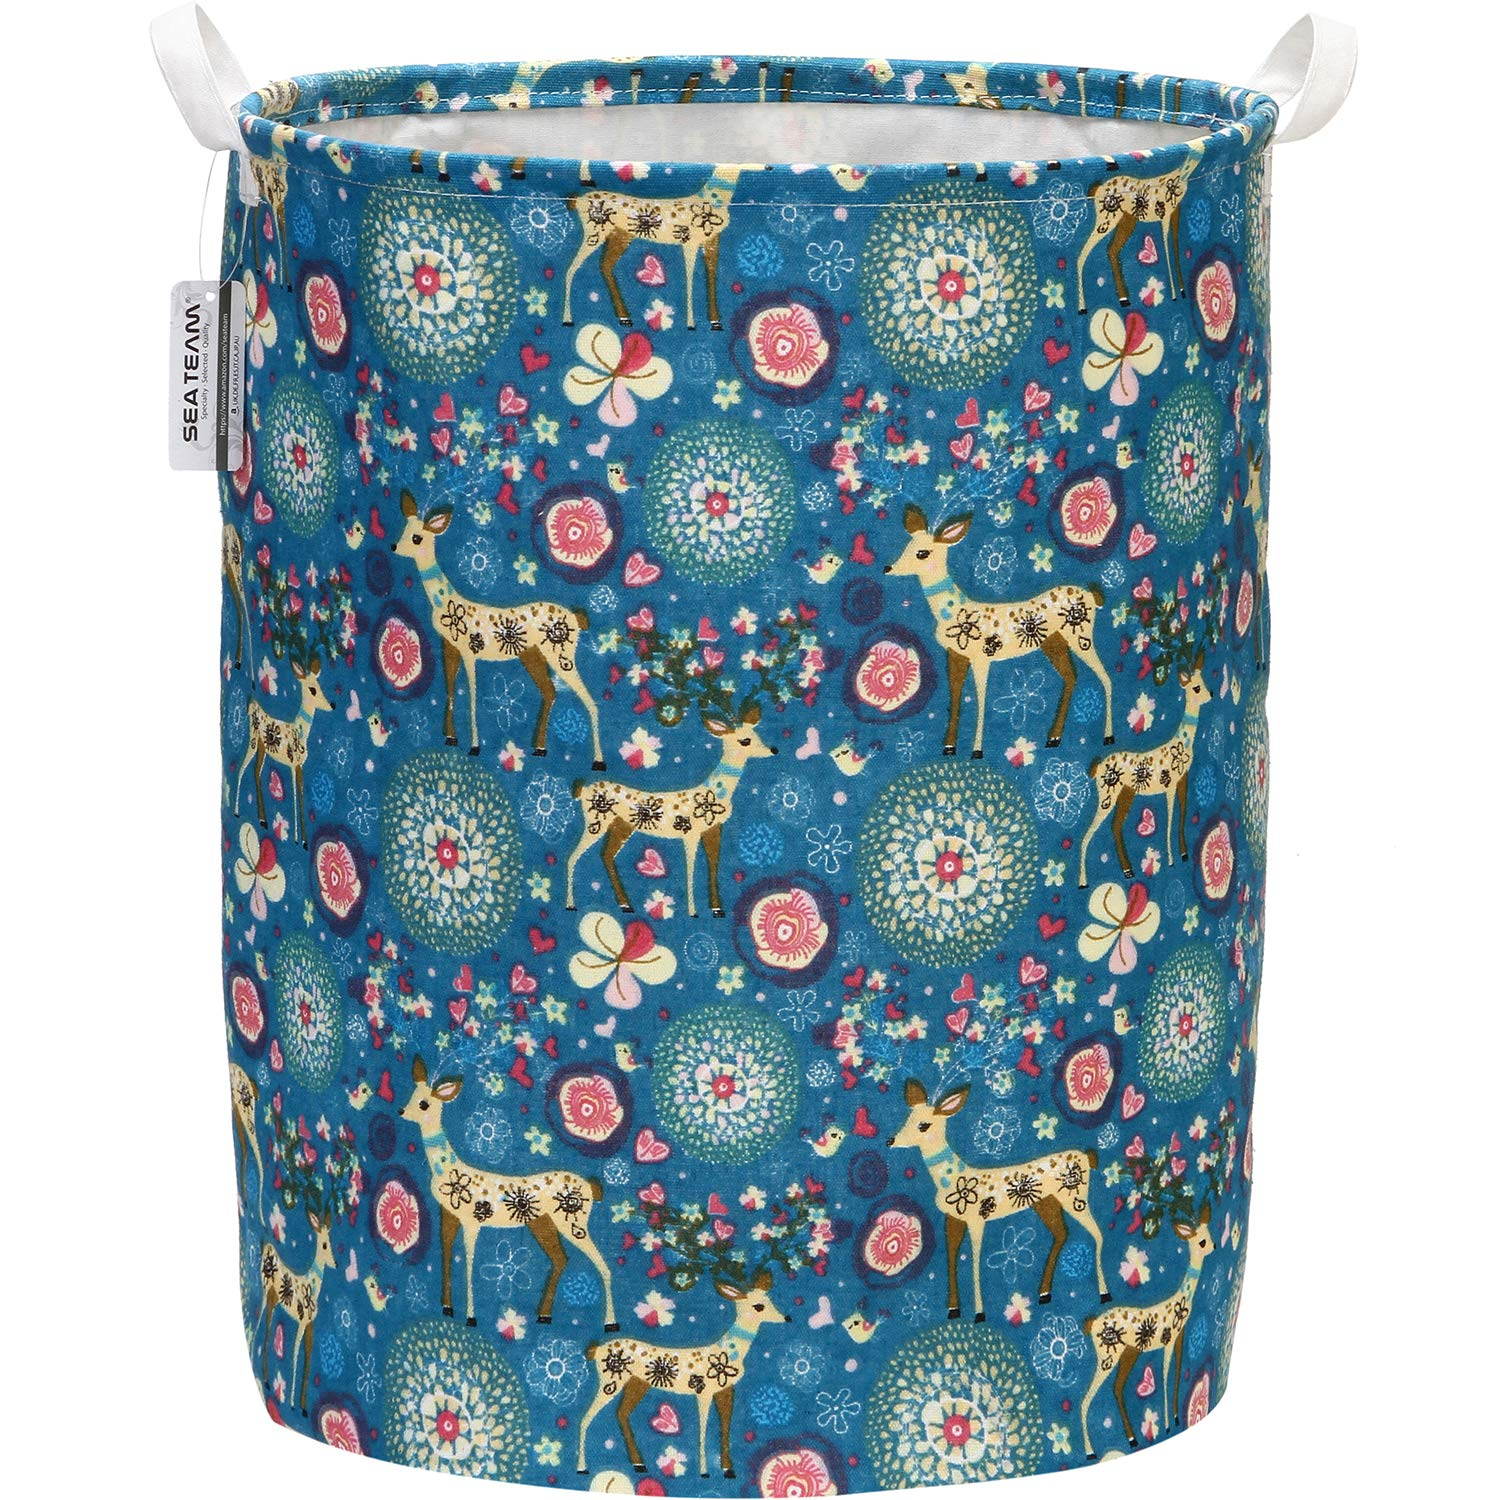 "Sea Team 19.7"" x 15.7"" Large Sized Folding Cylindric Canvas Fabric Laundry Hamper Storage Basket with Deer Pattern, Blue"